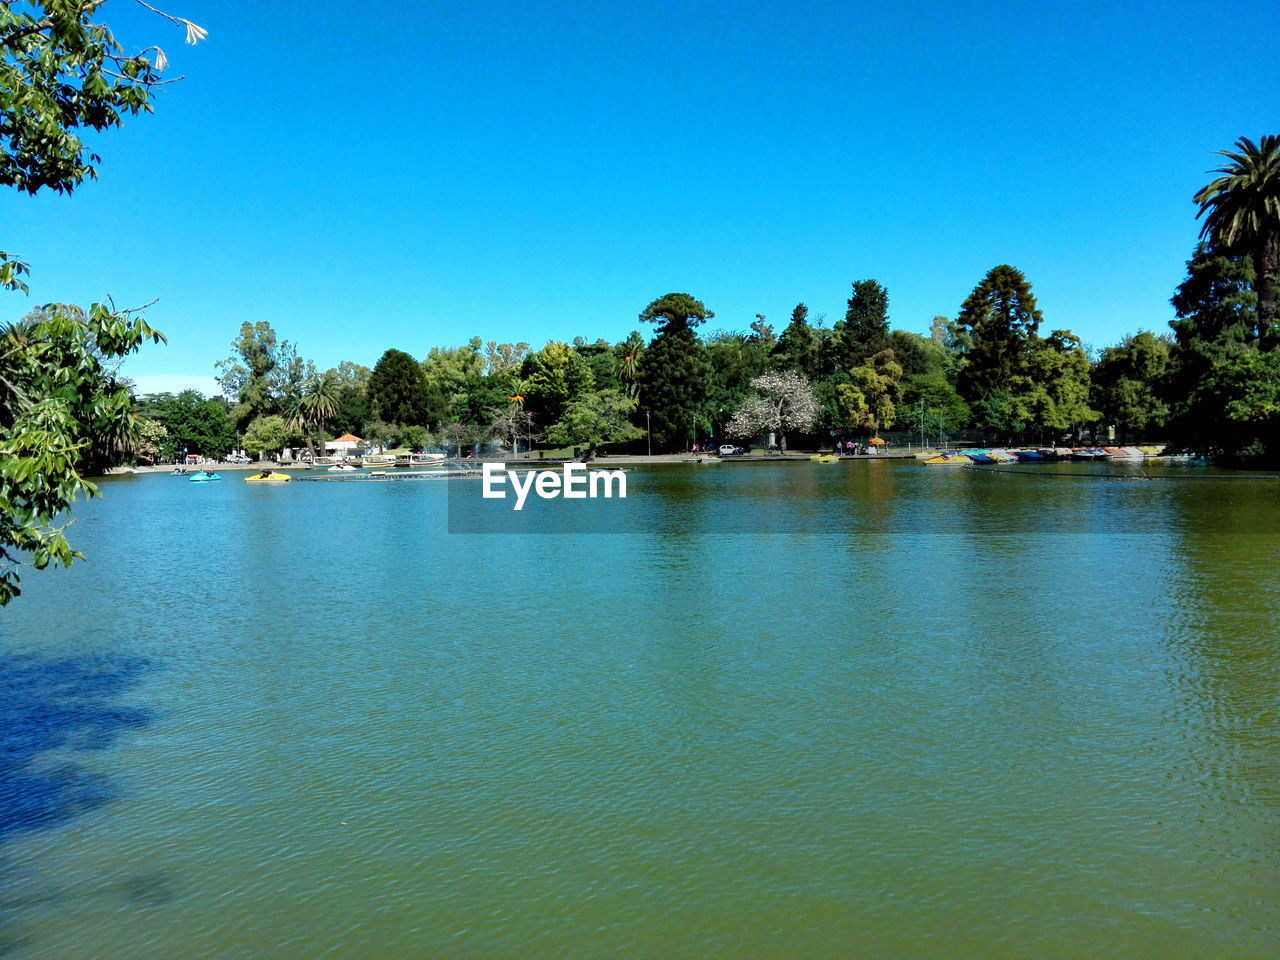 tree, water, clear sky, blue, palm tree, tranquility, sea, tranquil scene, outdoors, scenics, swimming pool, nature, beauty in nature, day, no people, sky